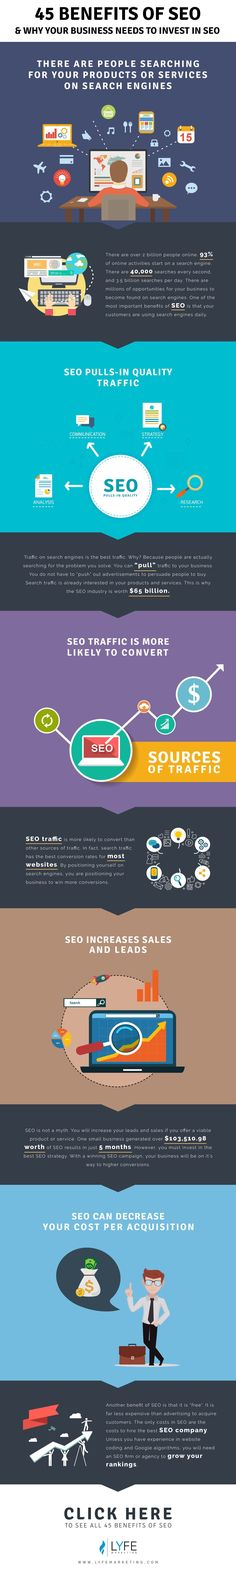 What are the benefits of SEO? The first benefit is that your customers use it daily. 93% of online activities start with a search engine. Secondly, the traffic from search engines are high quality. SEO Traffic is more likely to convert than any other sour